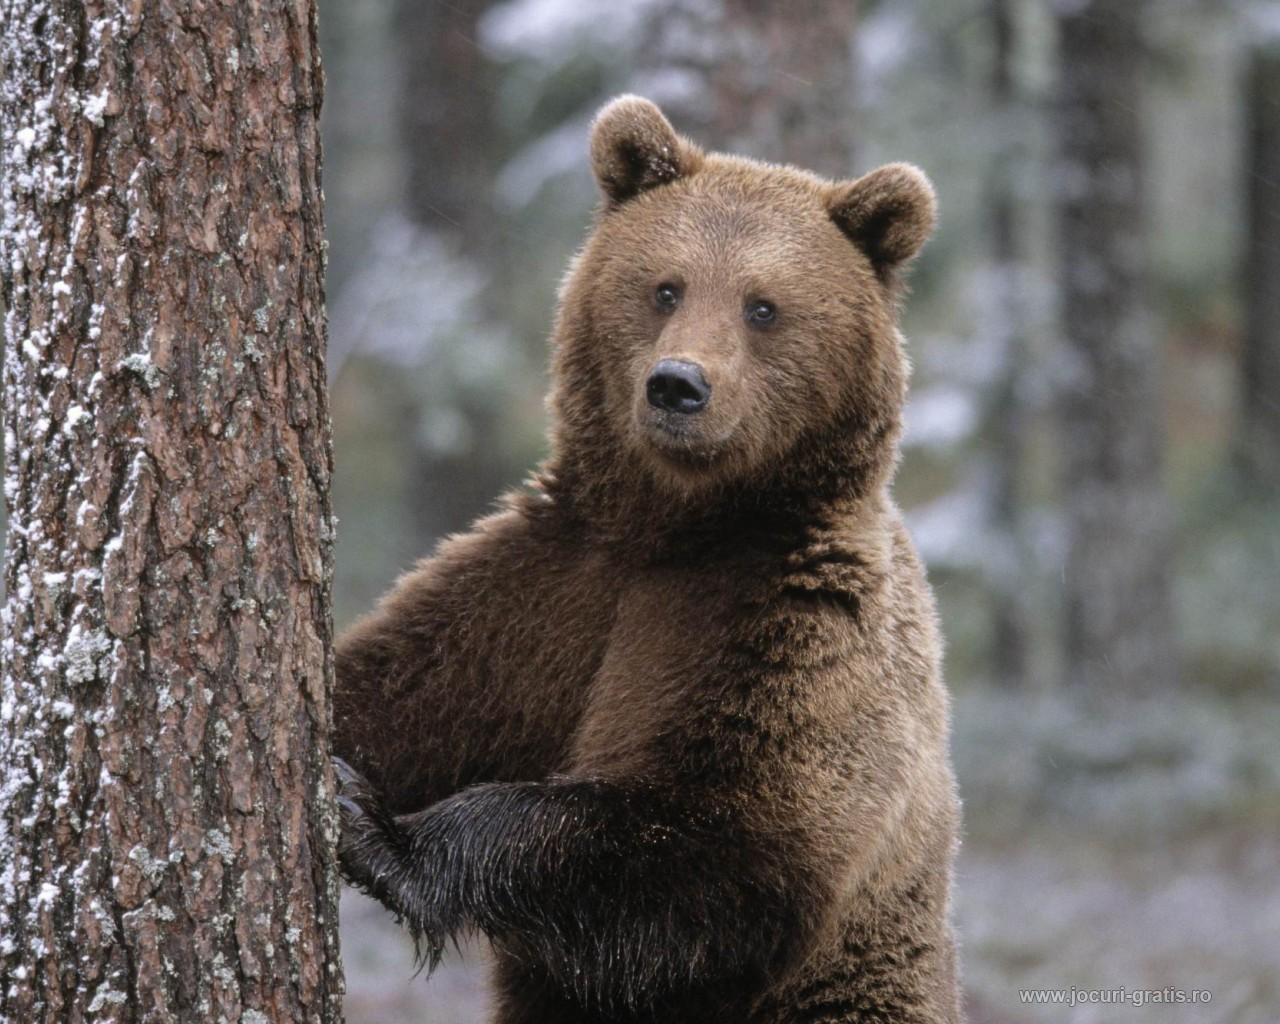 Why visit Romania?: Brown bear